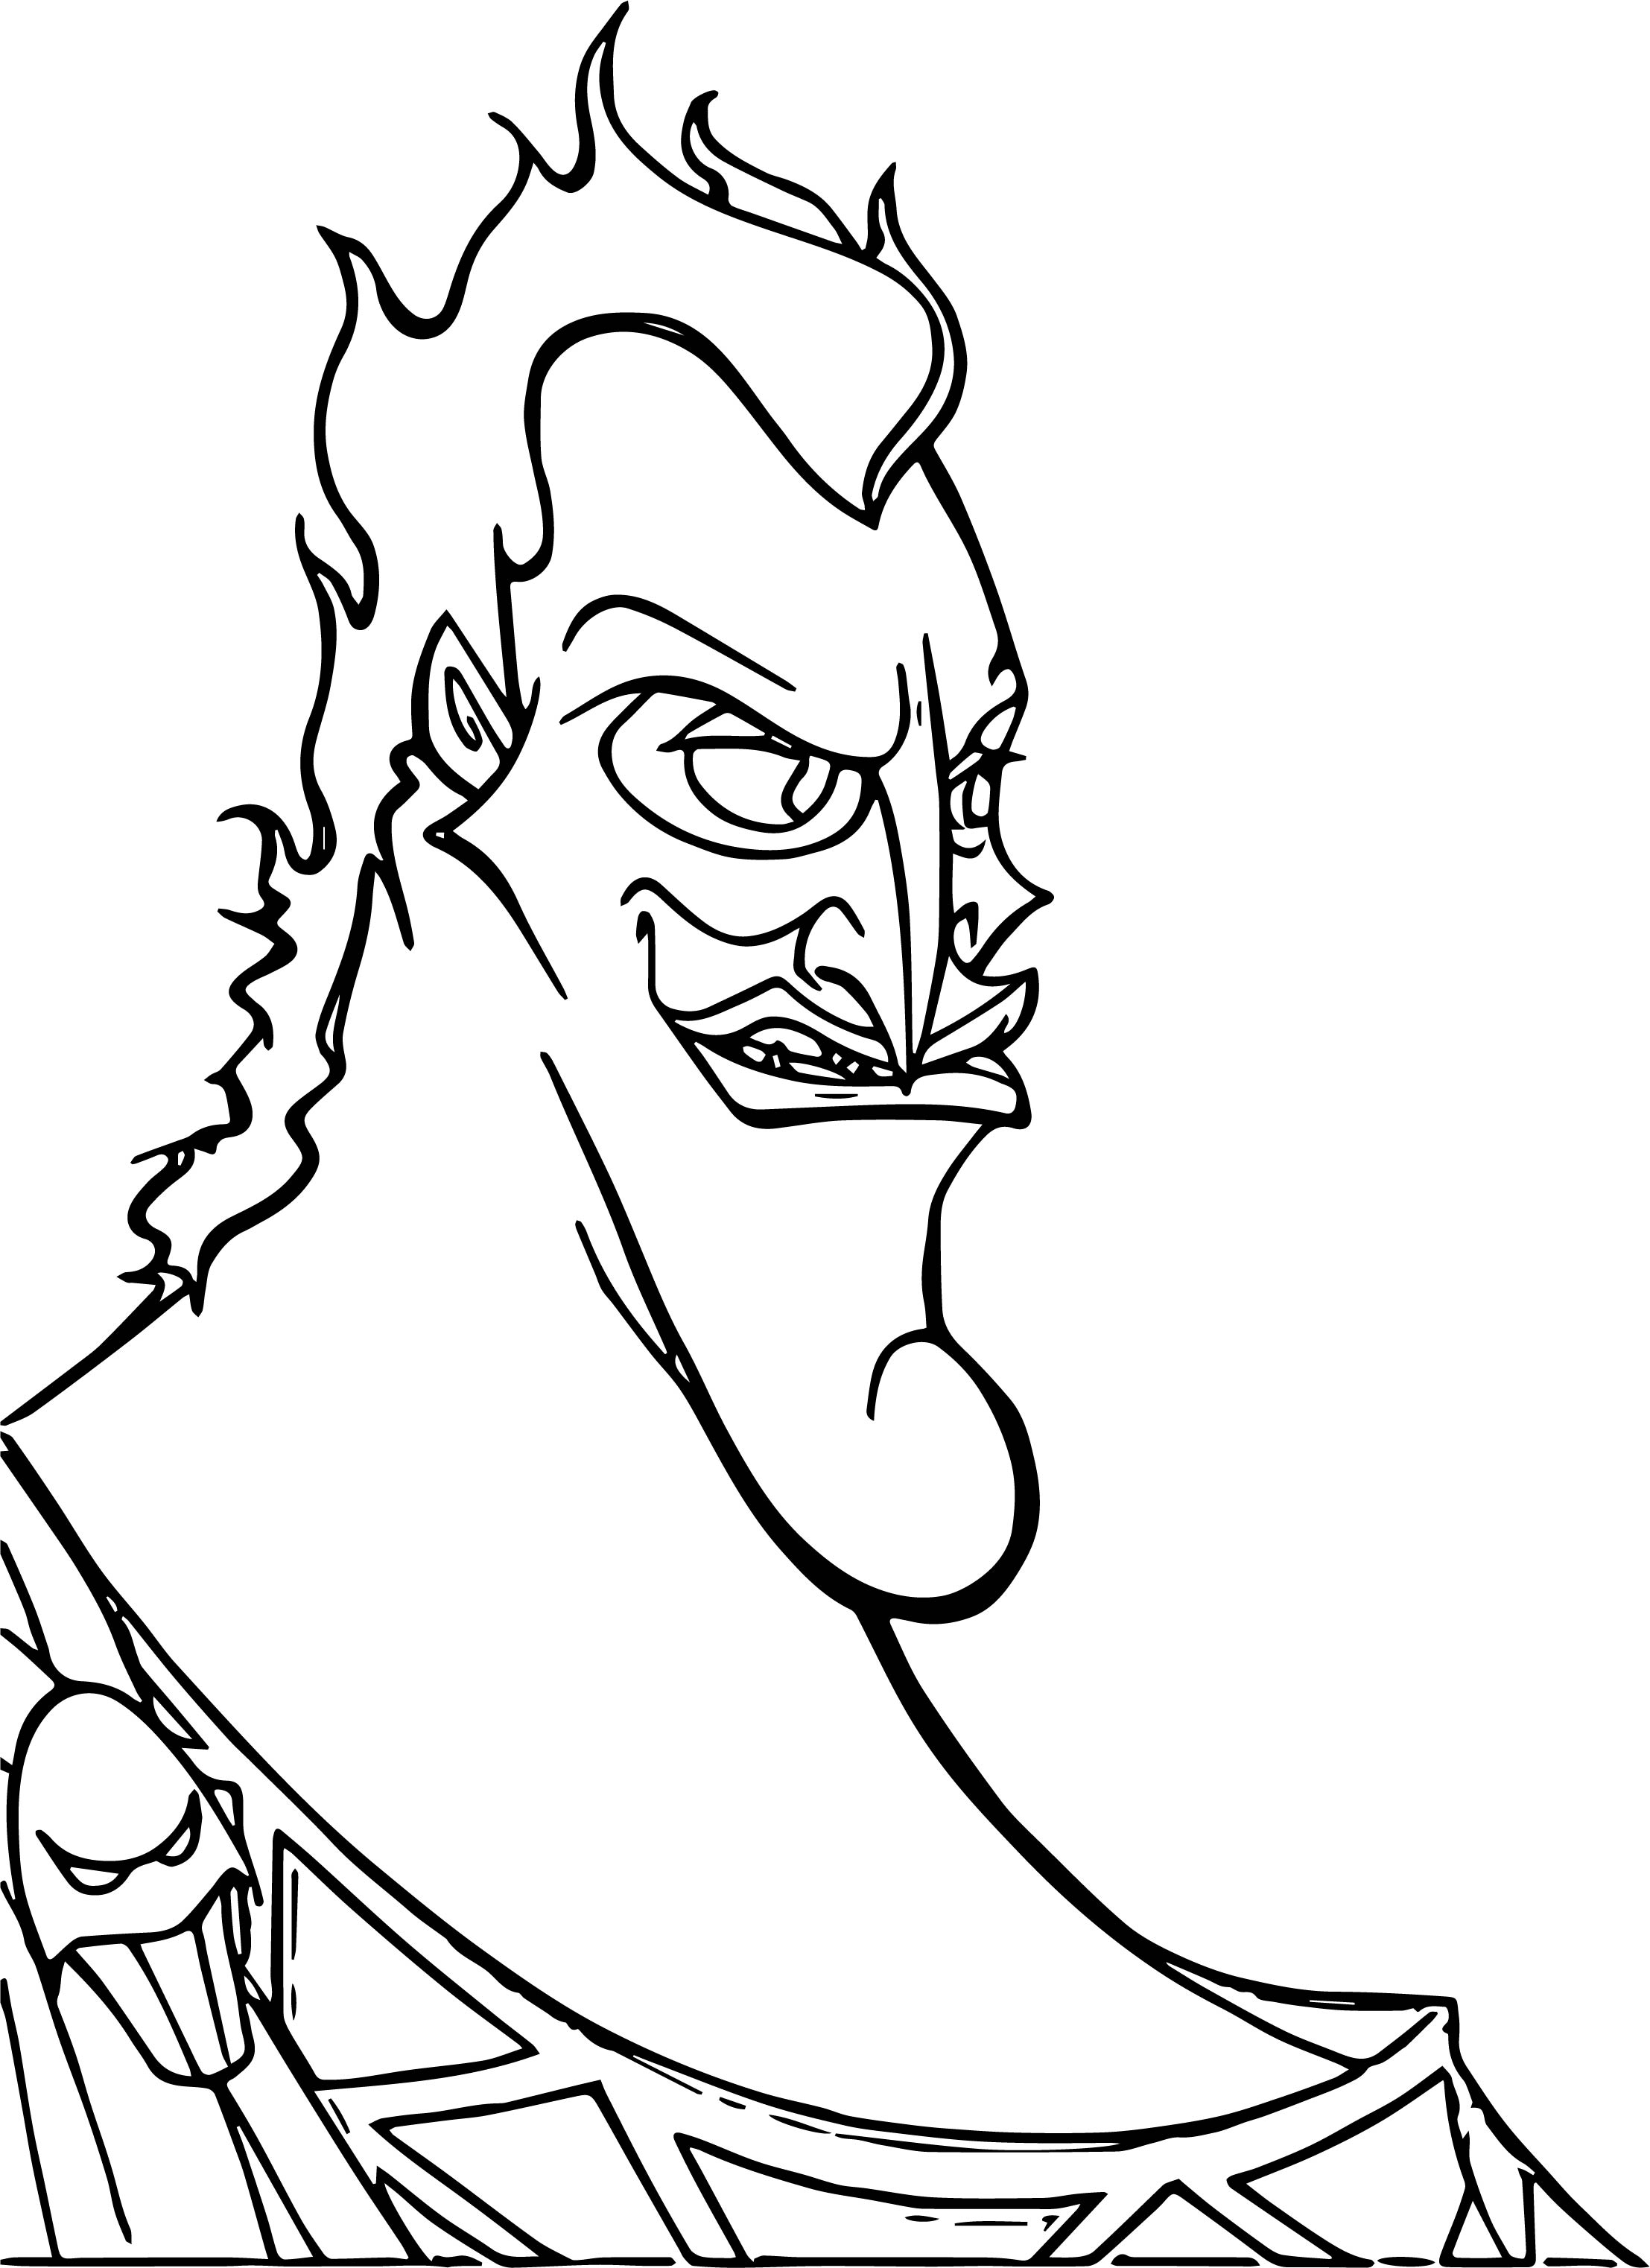 Hades Bad Coloring Pages